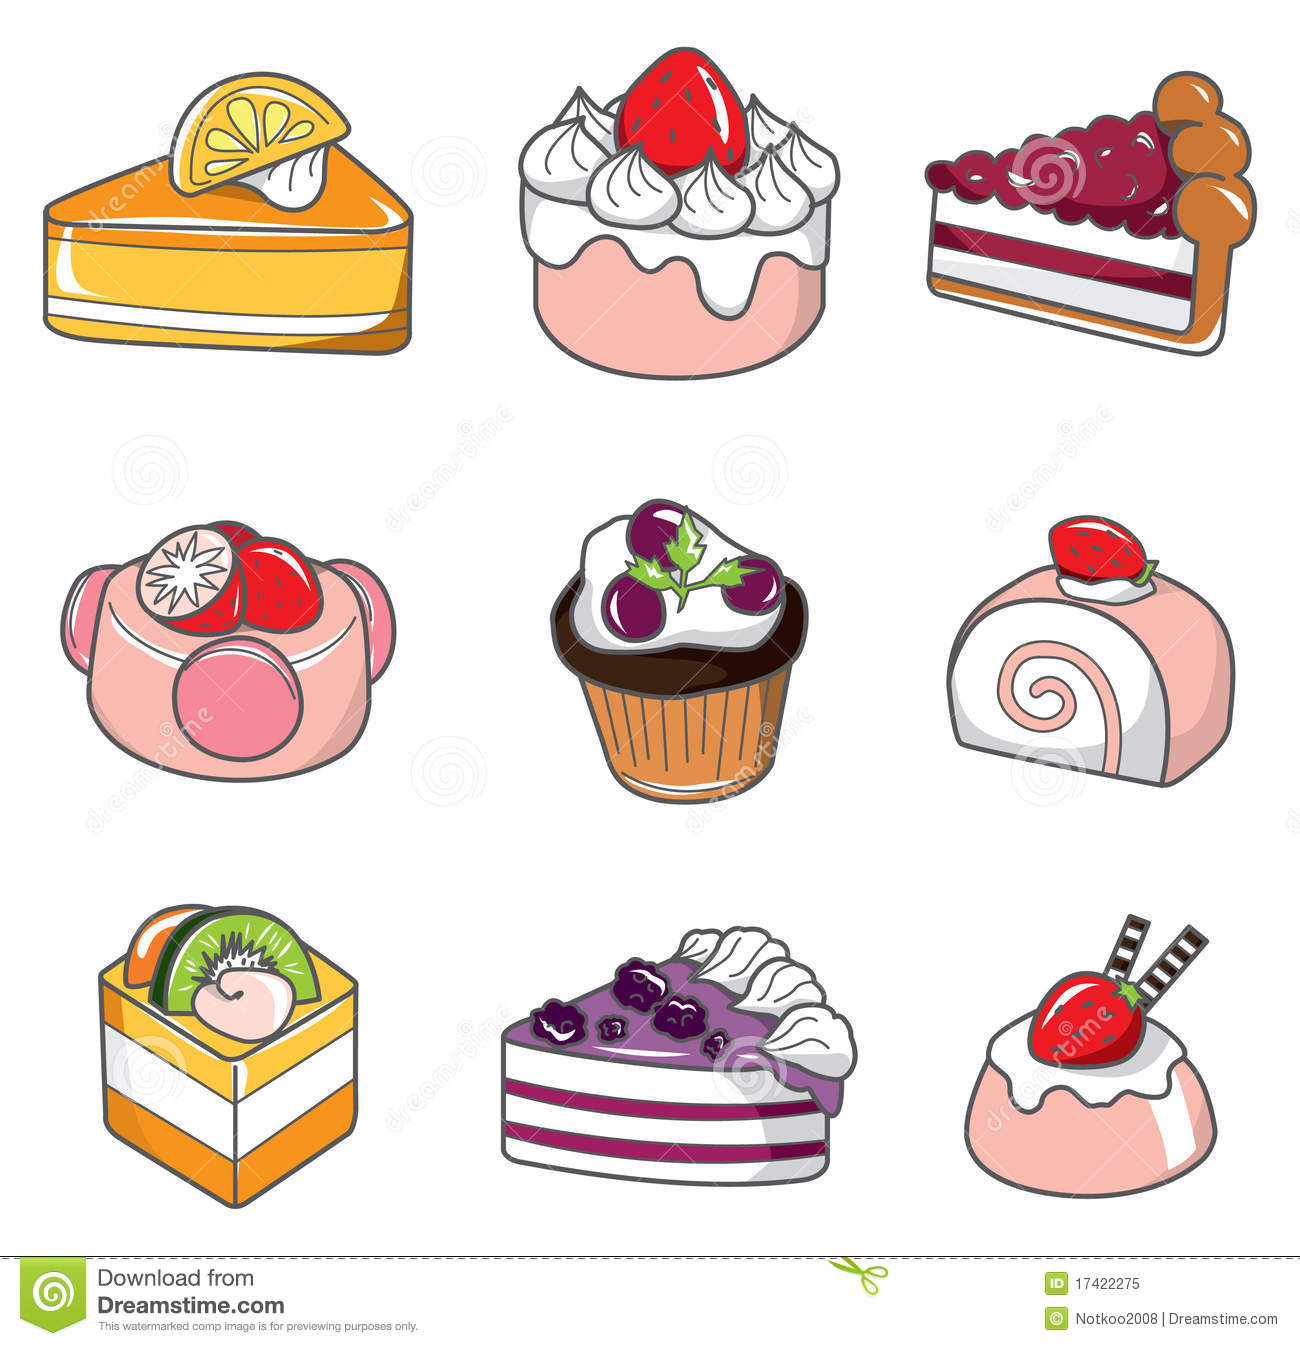 Doodle cake stock vector. Illustration of doodle. cherry - 17422275